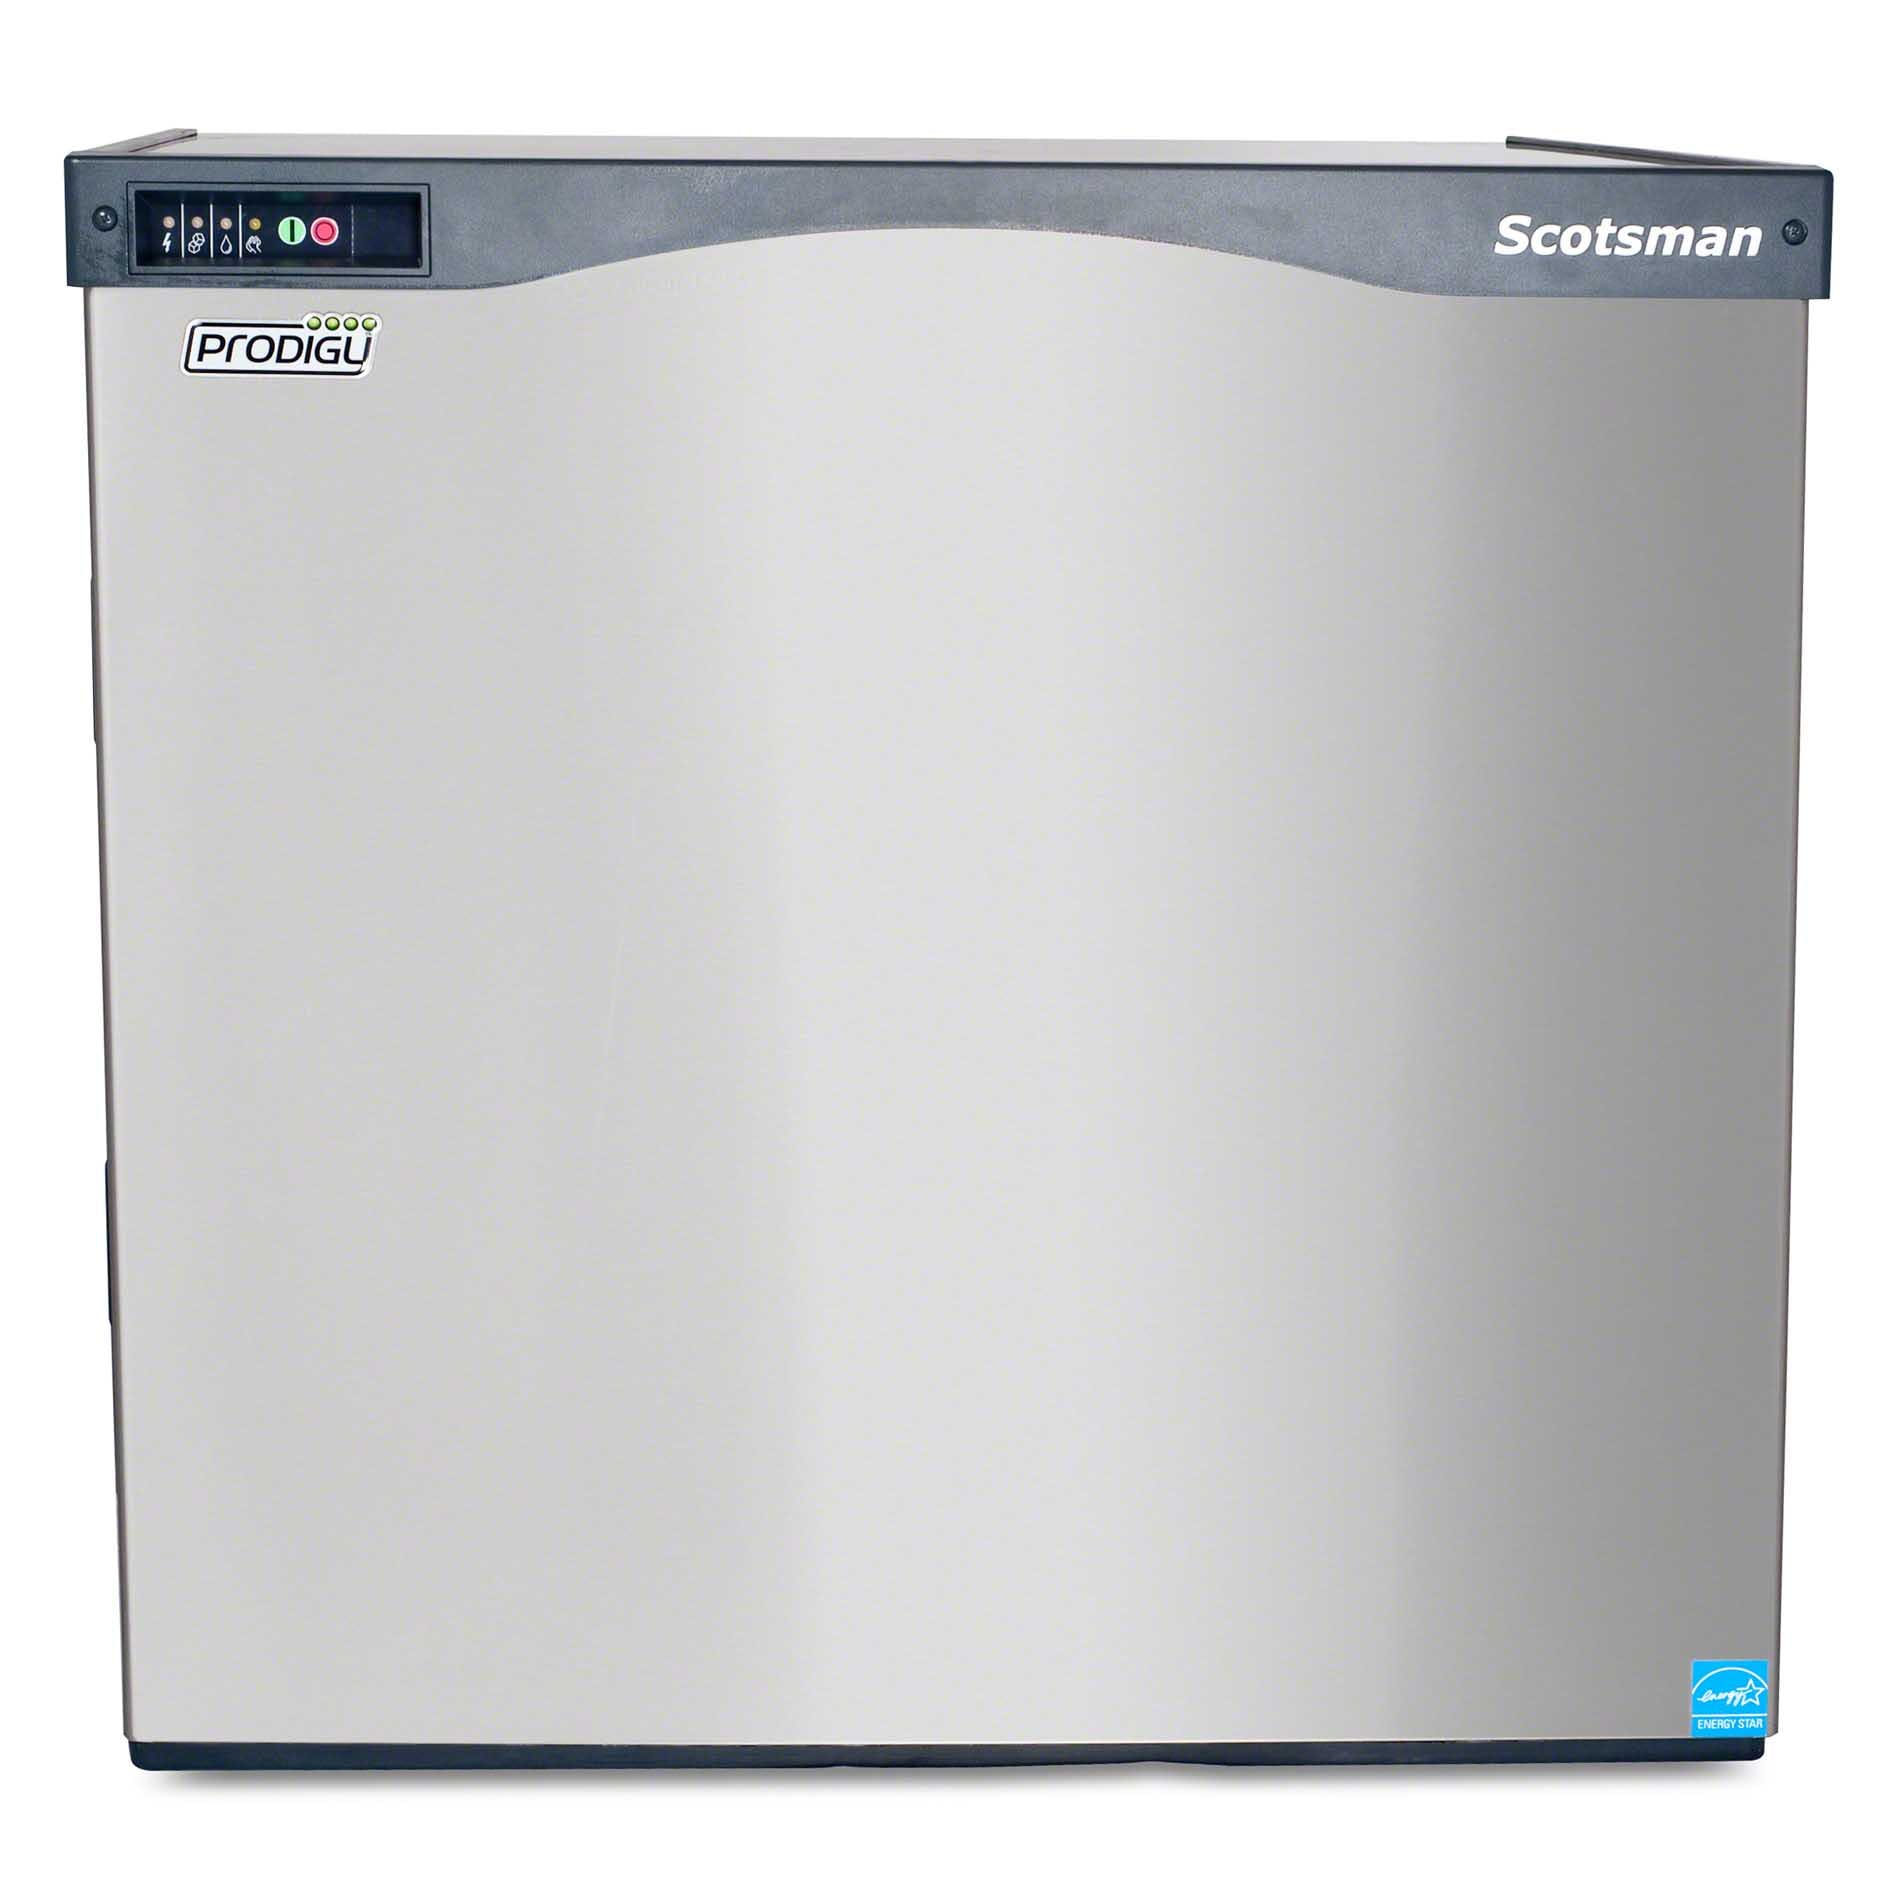 Scotsman - C1030SA-3A 1077 lb Half Size Cube Ice Machine - Prodigy Series - sold by Food Service Warehouse